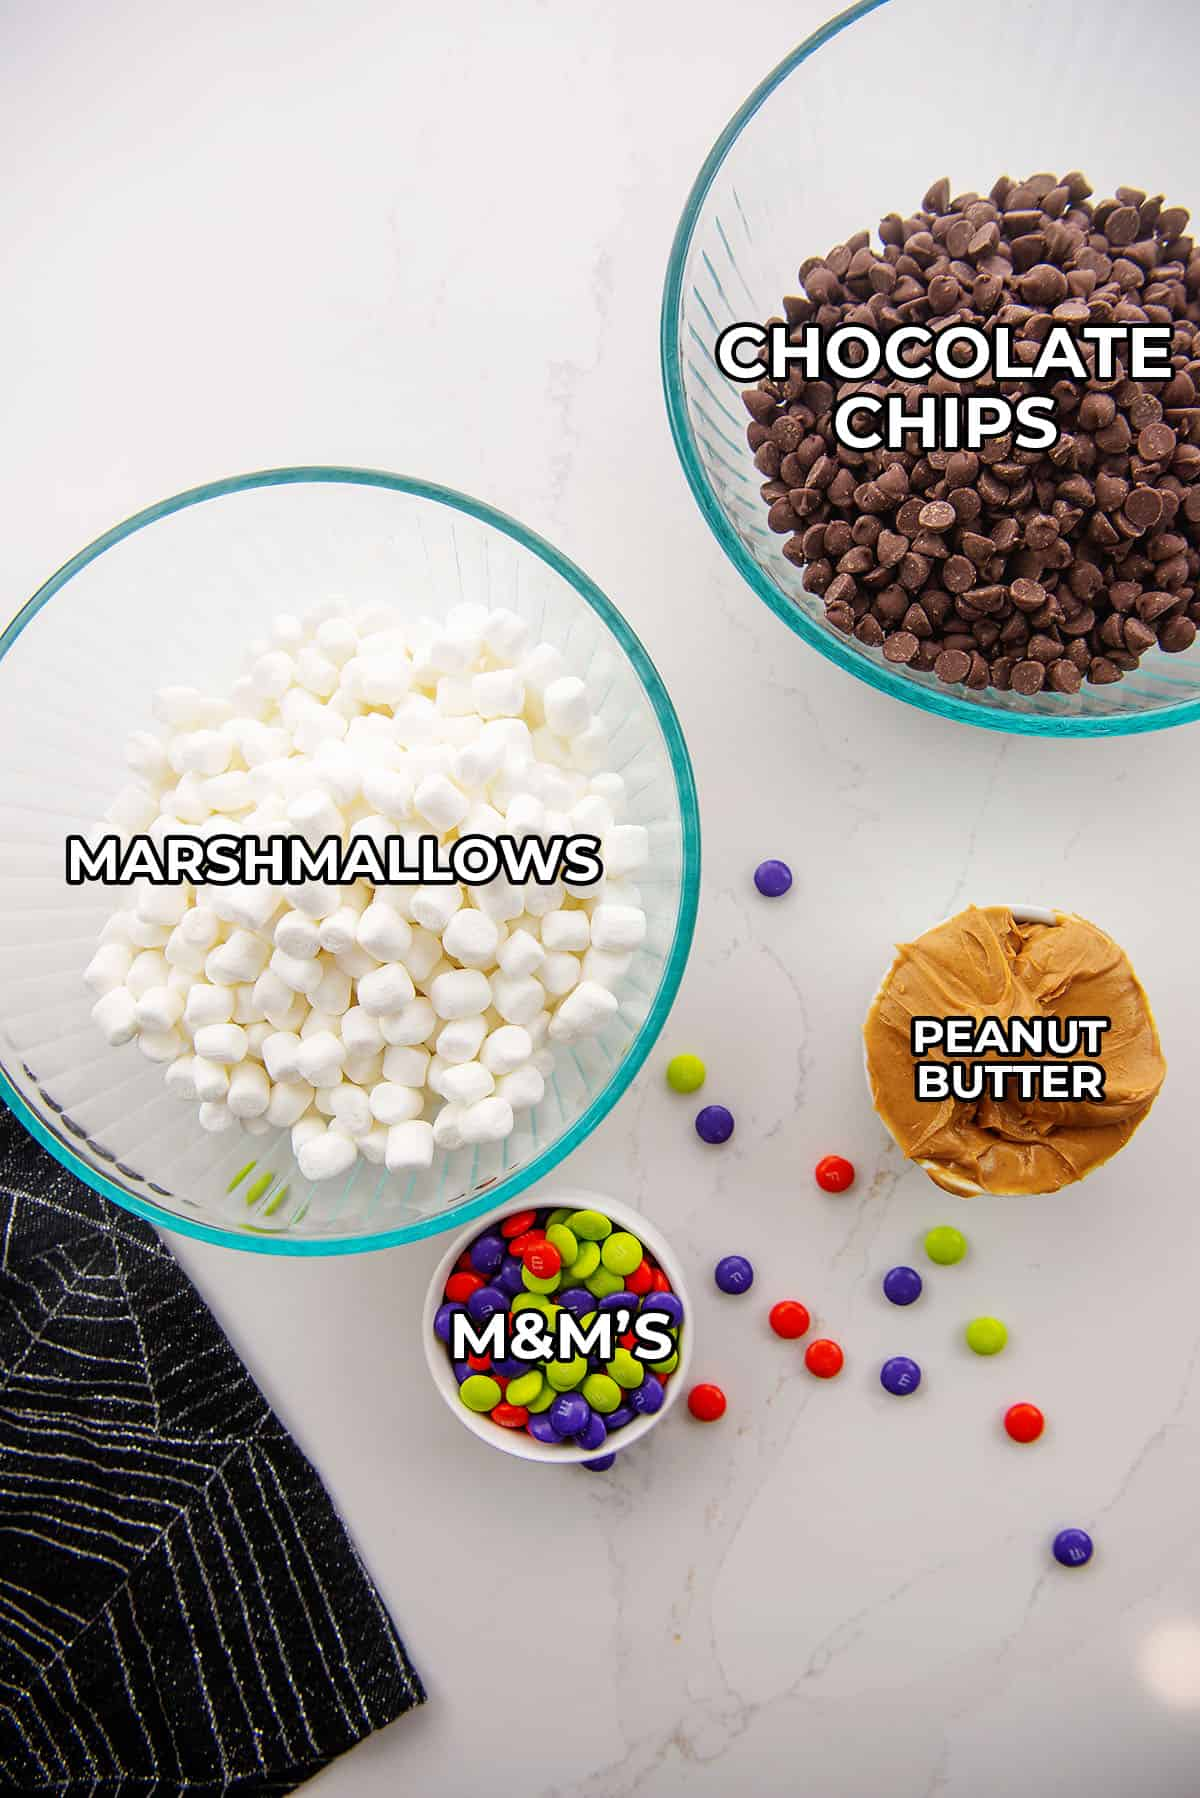 ingredients for Halloween candy bars.